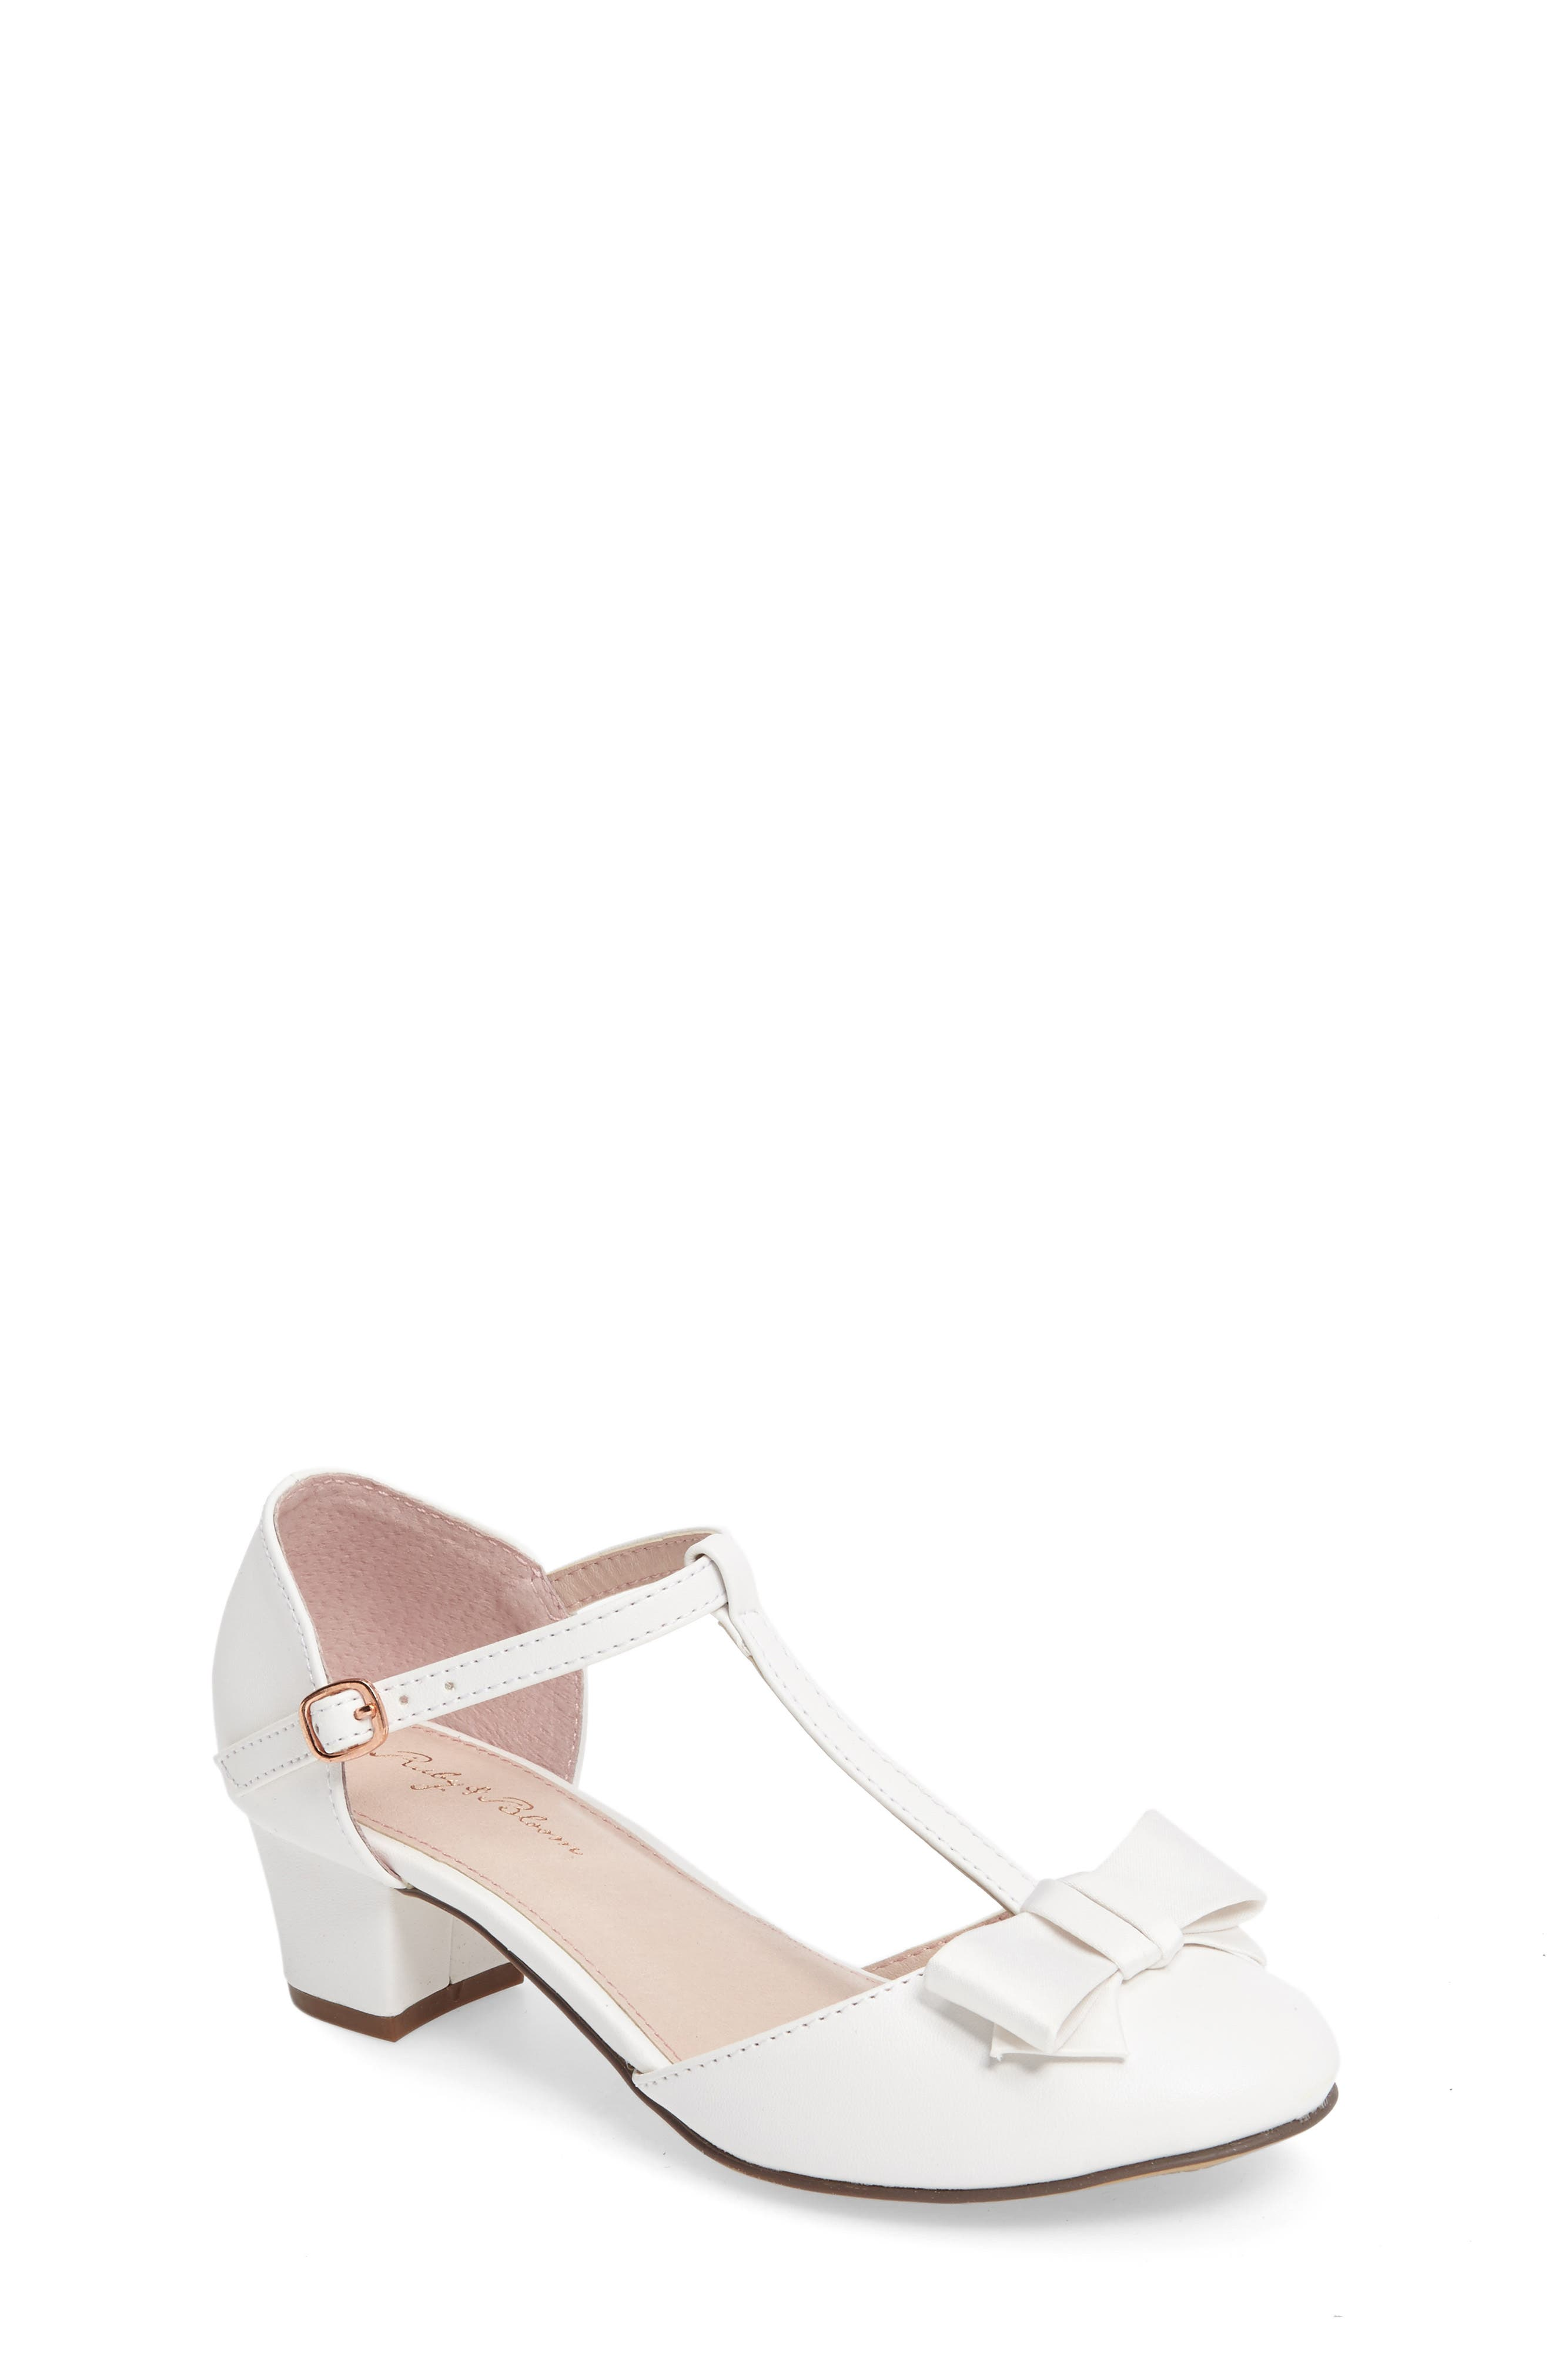 Wylow T-Strap Bow Pump,                             Main thumbnail 1, color,                             White Faux Leather